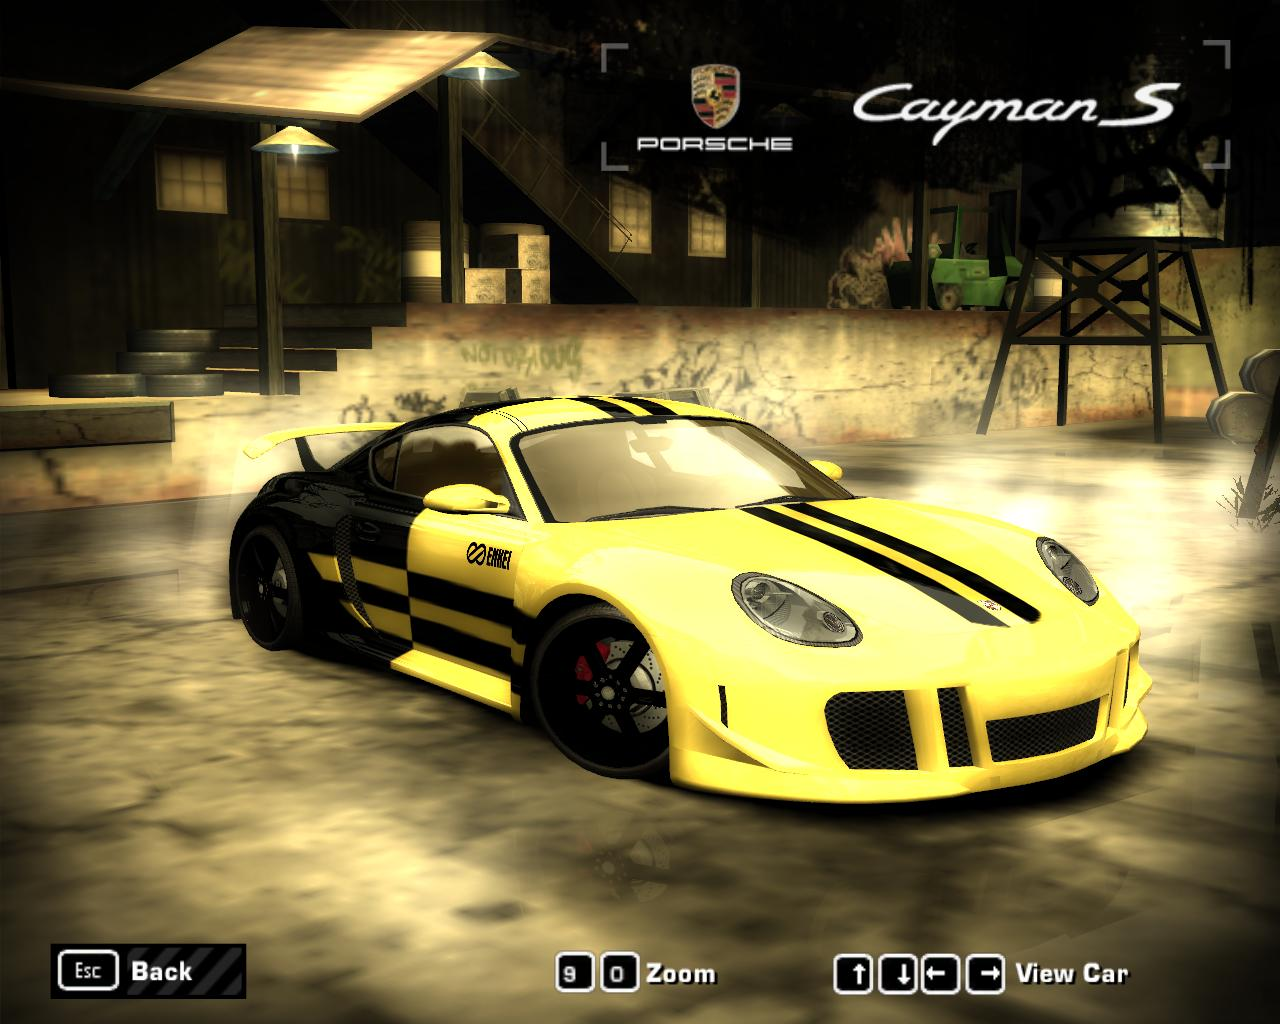 Image Cayman S Nfs Most Wanted Need For Speed